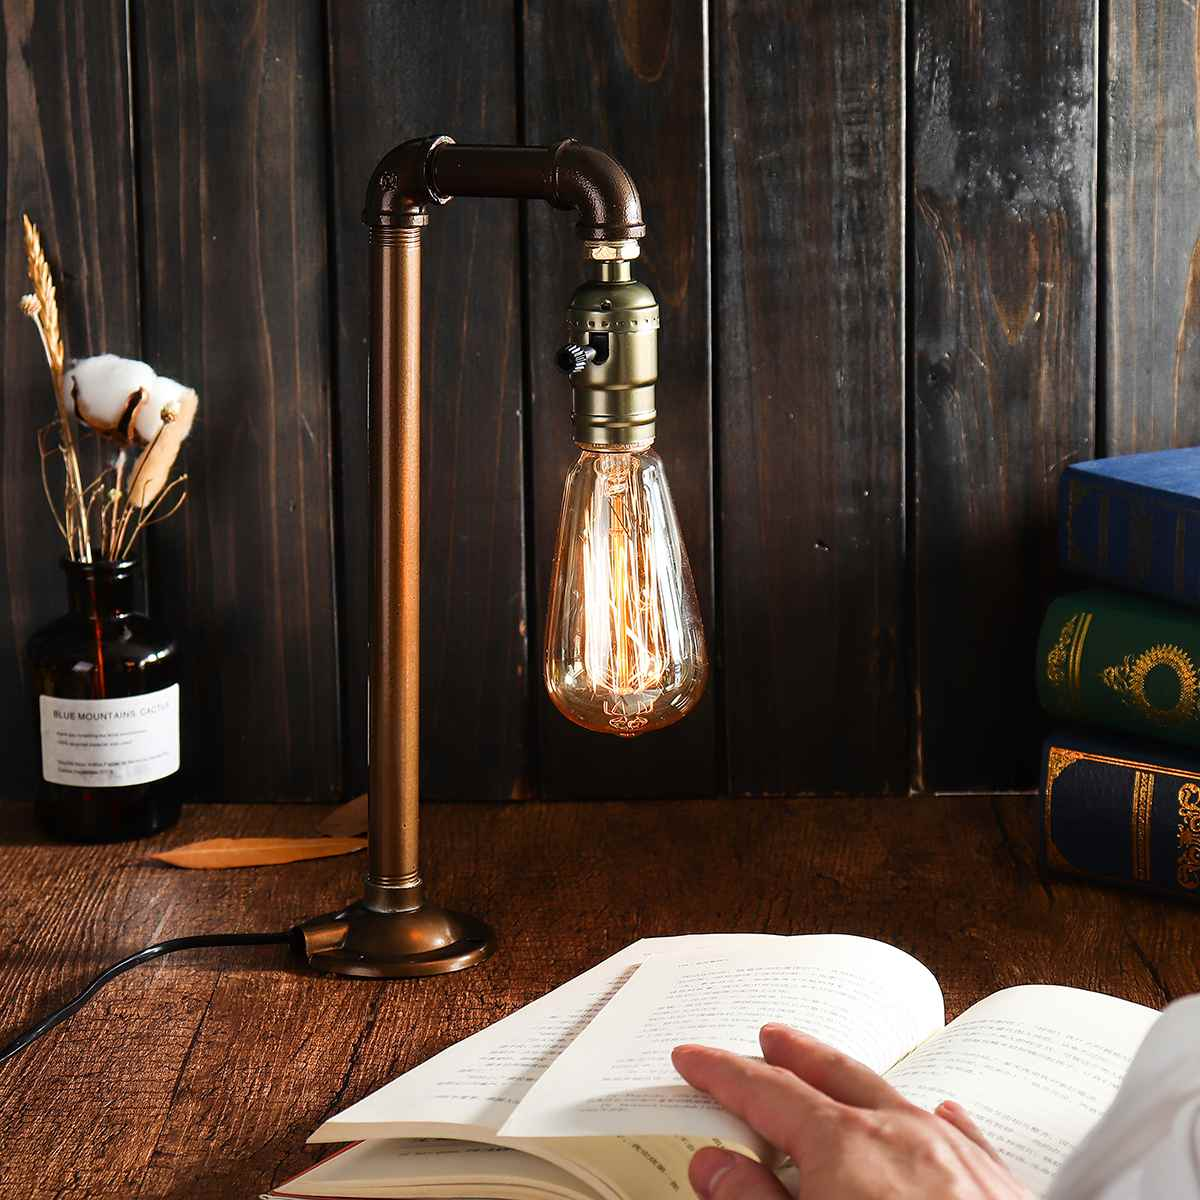 Water Pipe Industrial Table Lamp E27 Bulb Light Vintage Desk Table Lantern Lamp Fixture Indoor Lighting Home Bedroom Decoration